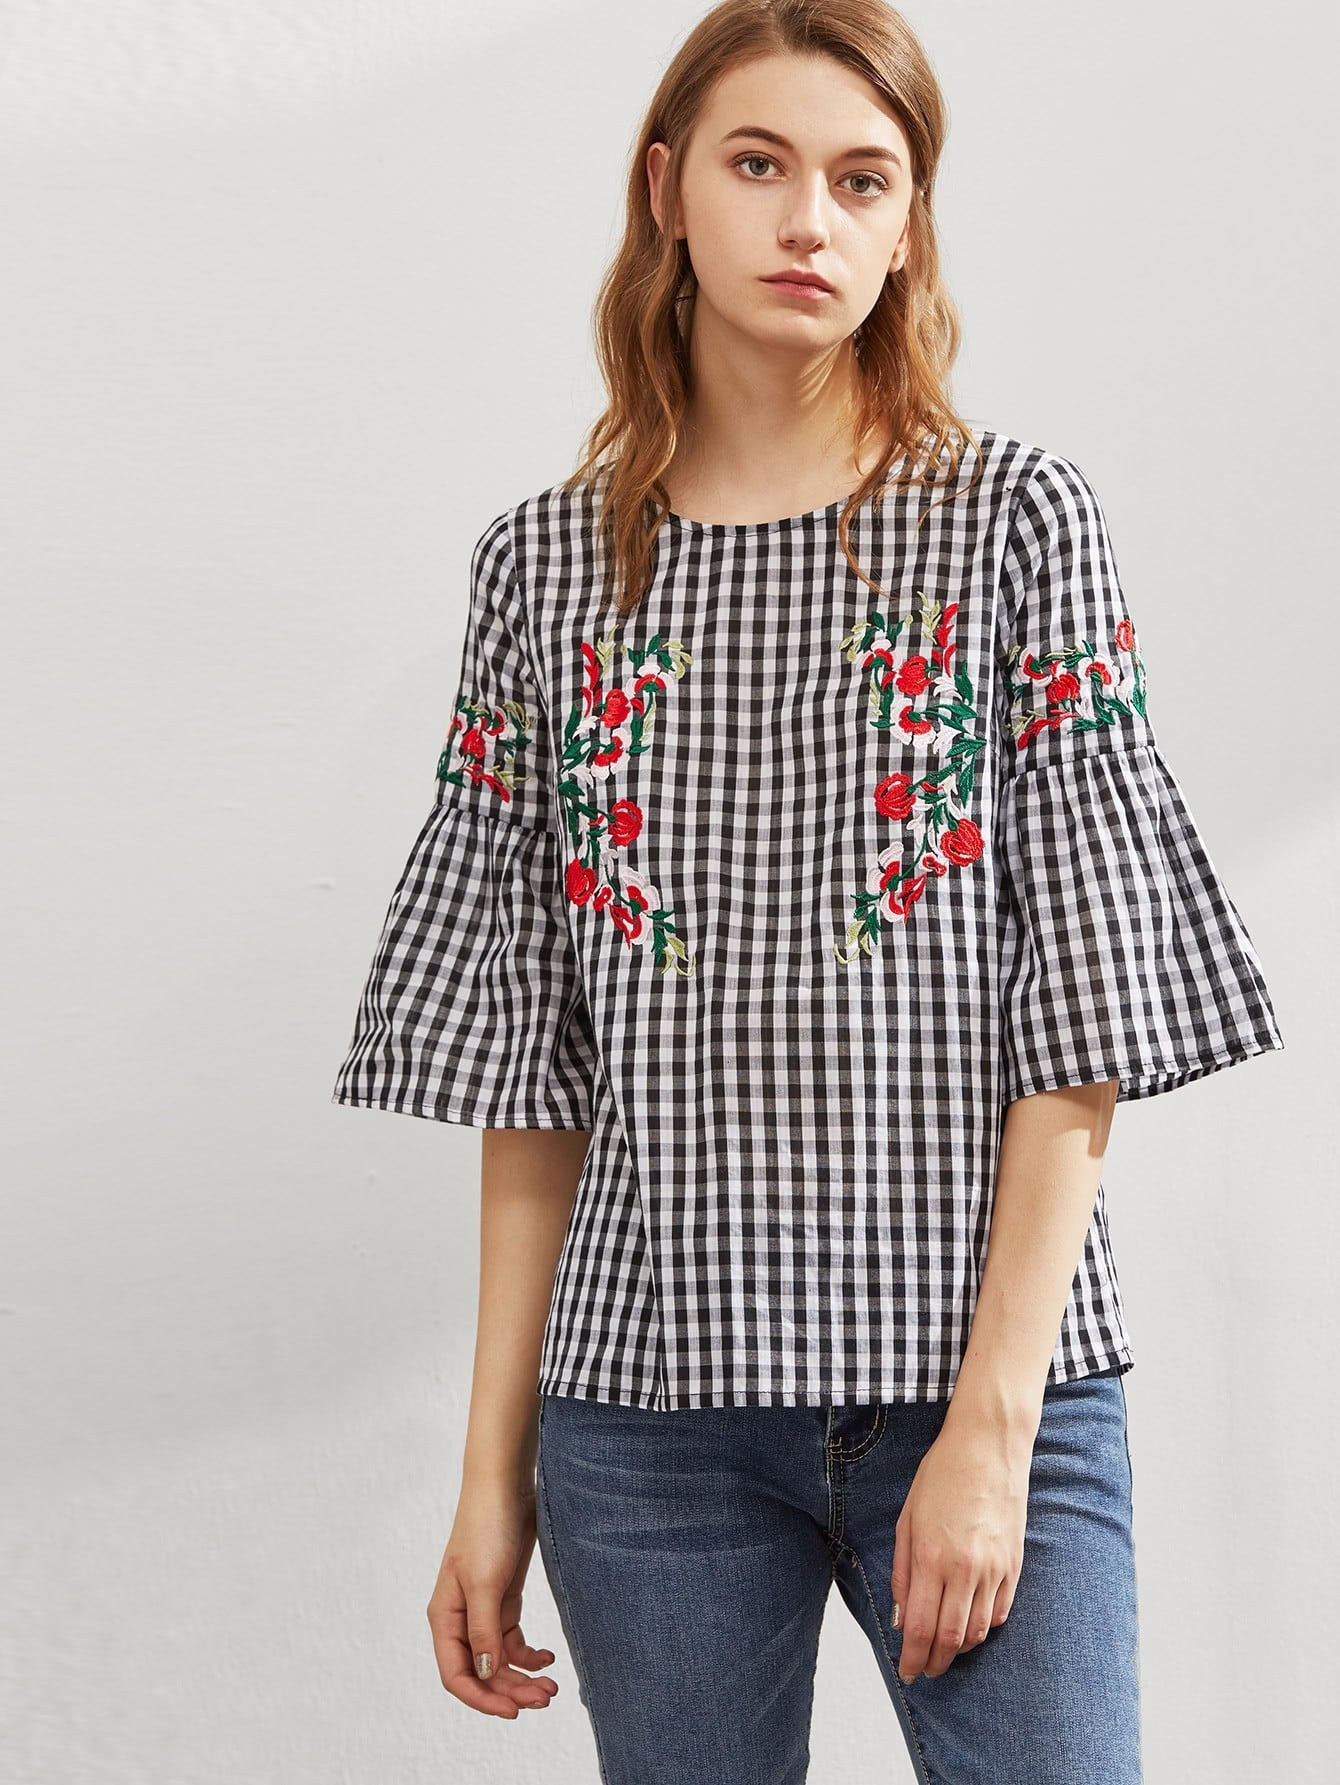 Symmetric Flower Embroidered Fluted Sleeve Checkered Top flower print choker neck fluted sleeve top